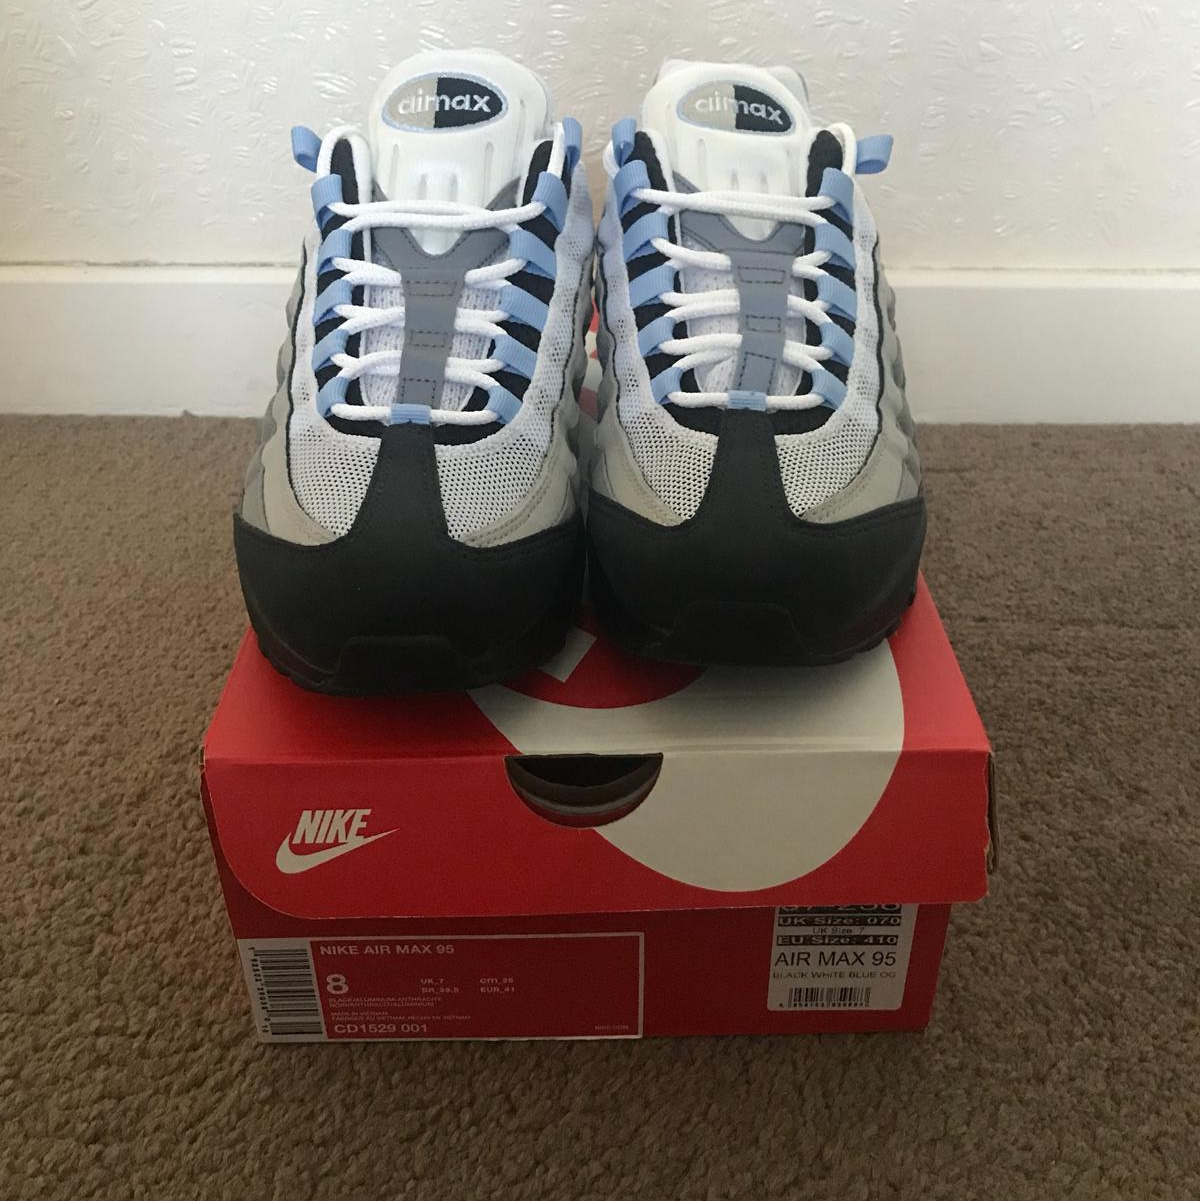 Nike air max 95 OG size 7 worn once no flaws